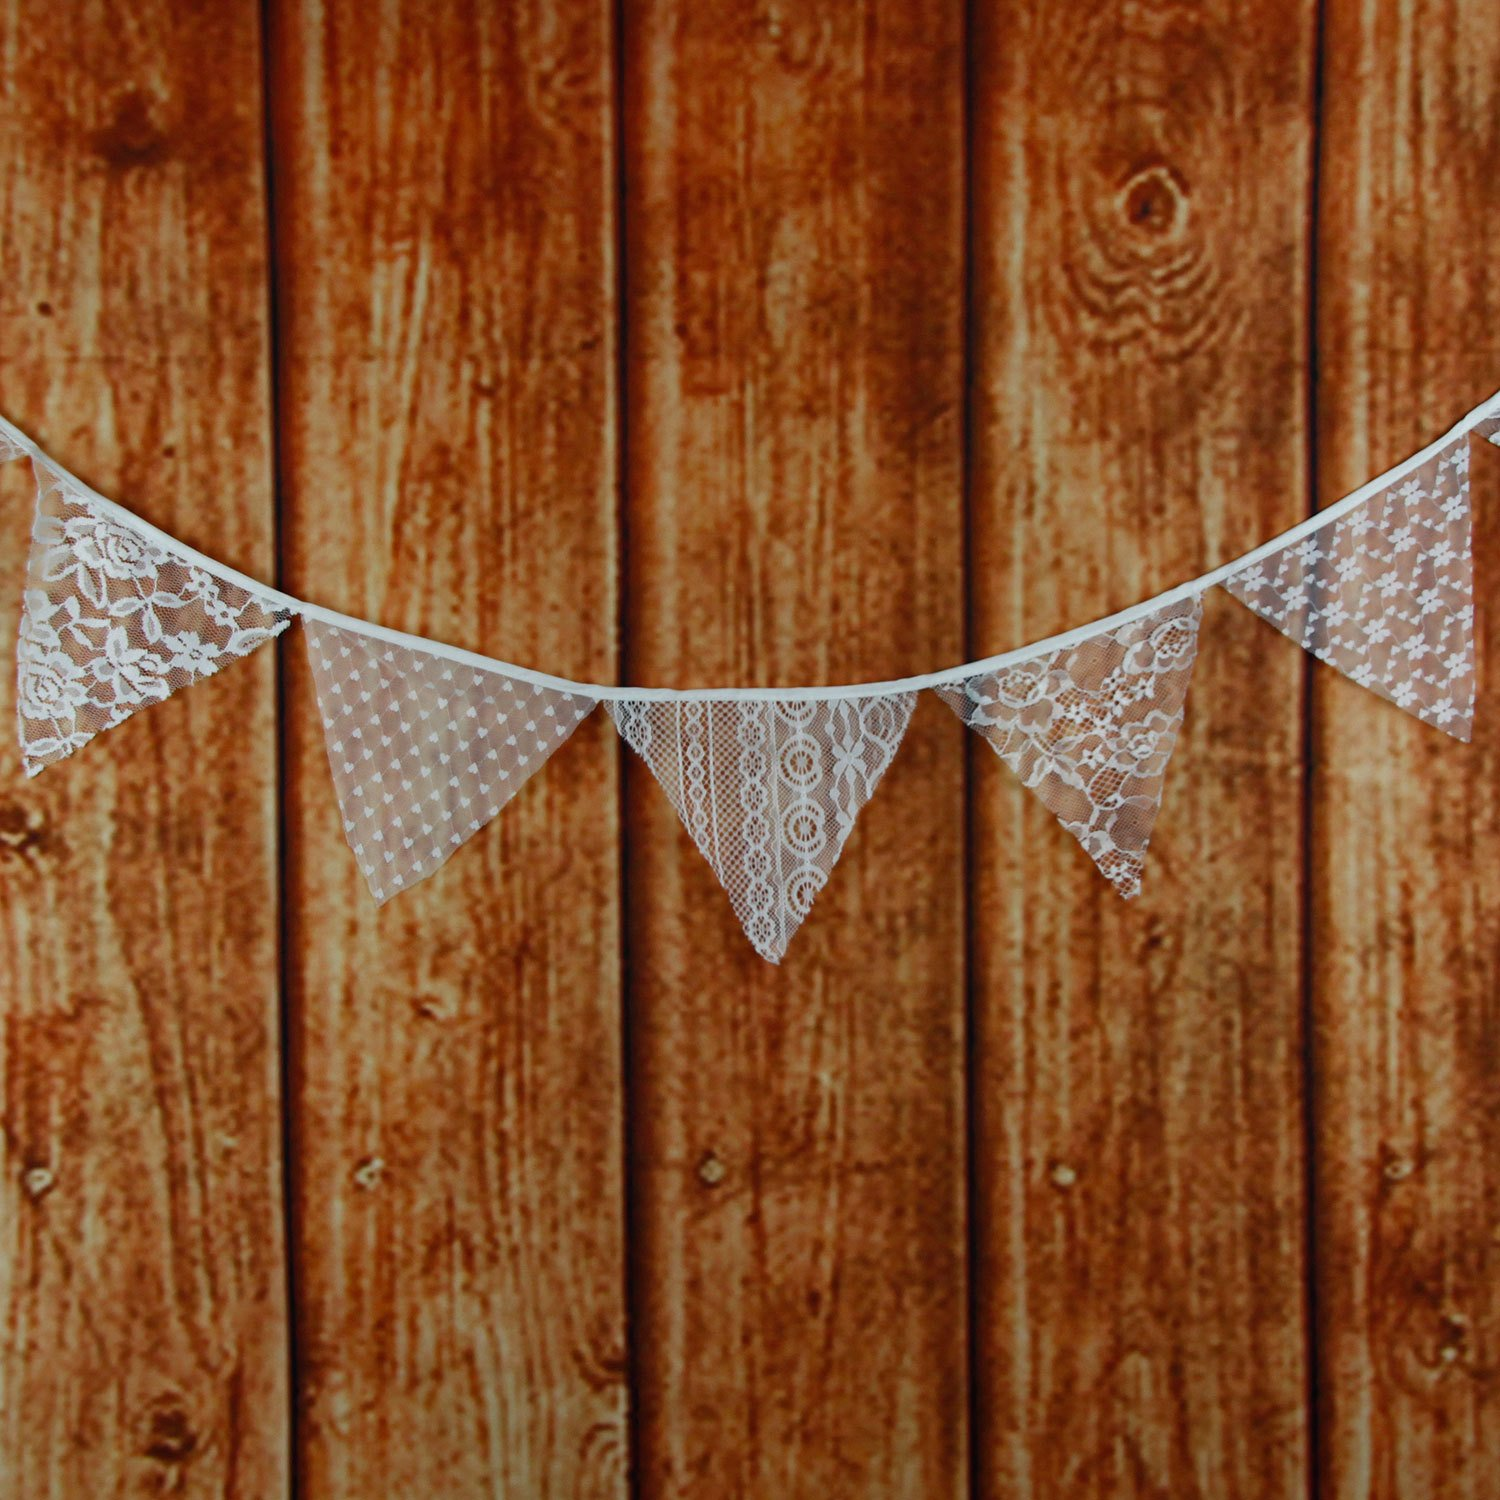 Get Orange 2 piece 126 Inch cotton cloth Vintage Favors Event Party Supplies Decoration Wedding White Lace Triangle Flags Cotton Decor Banner Banner banquet